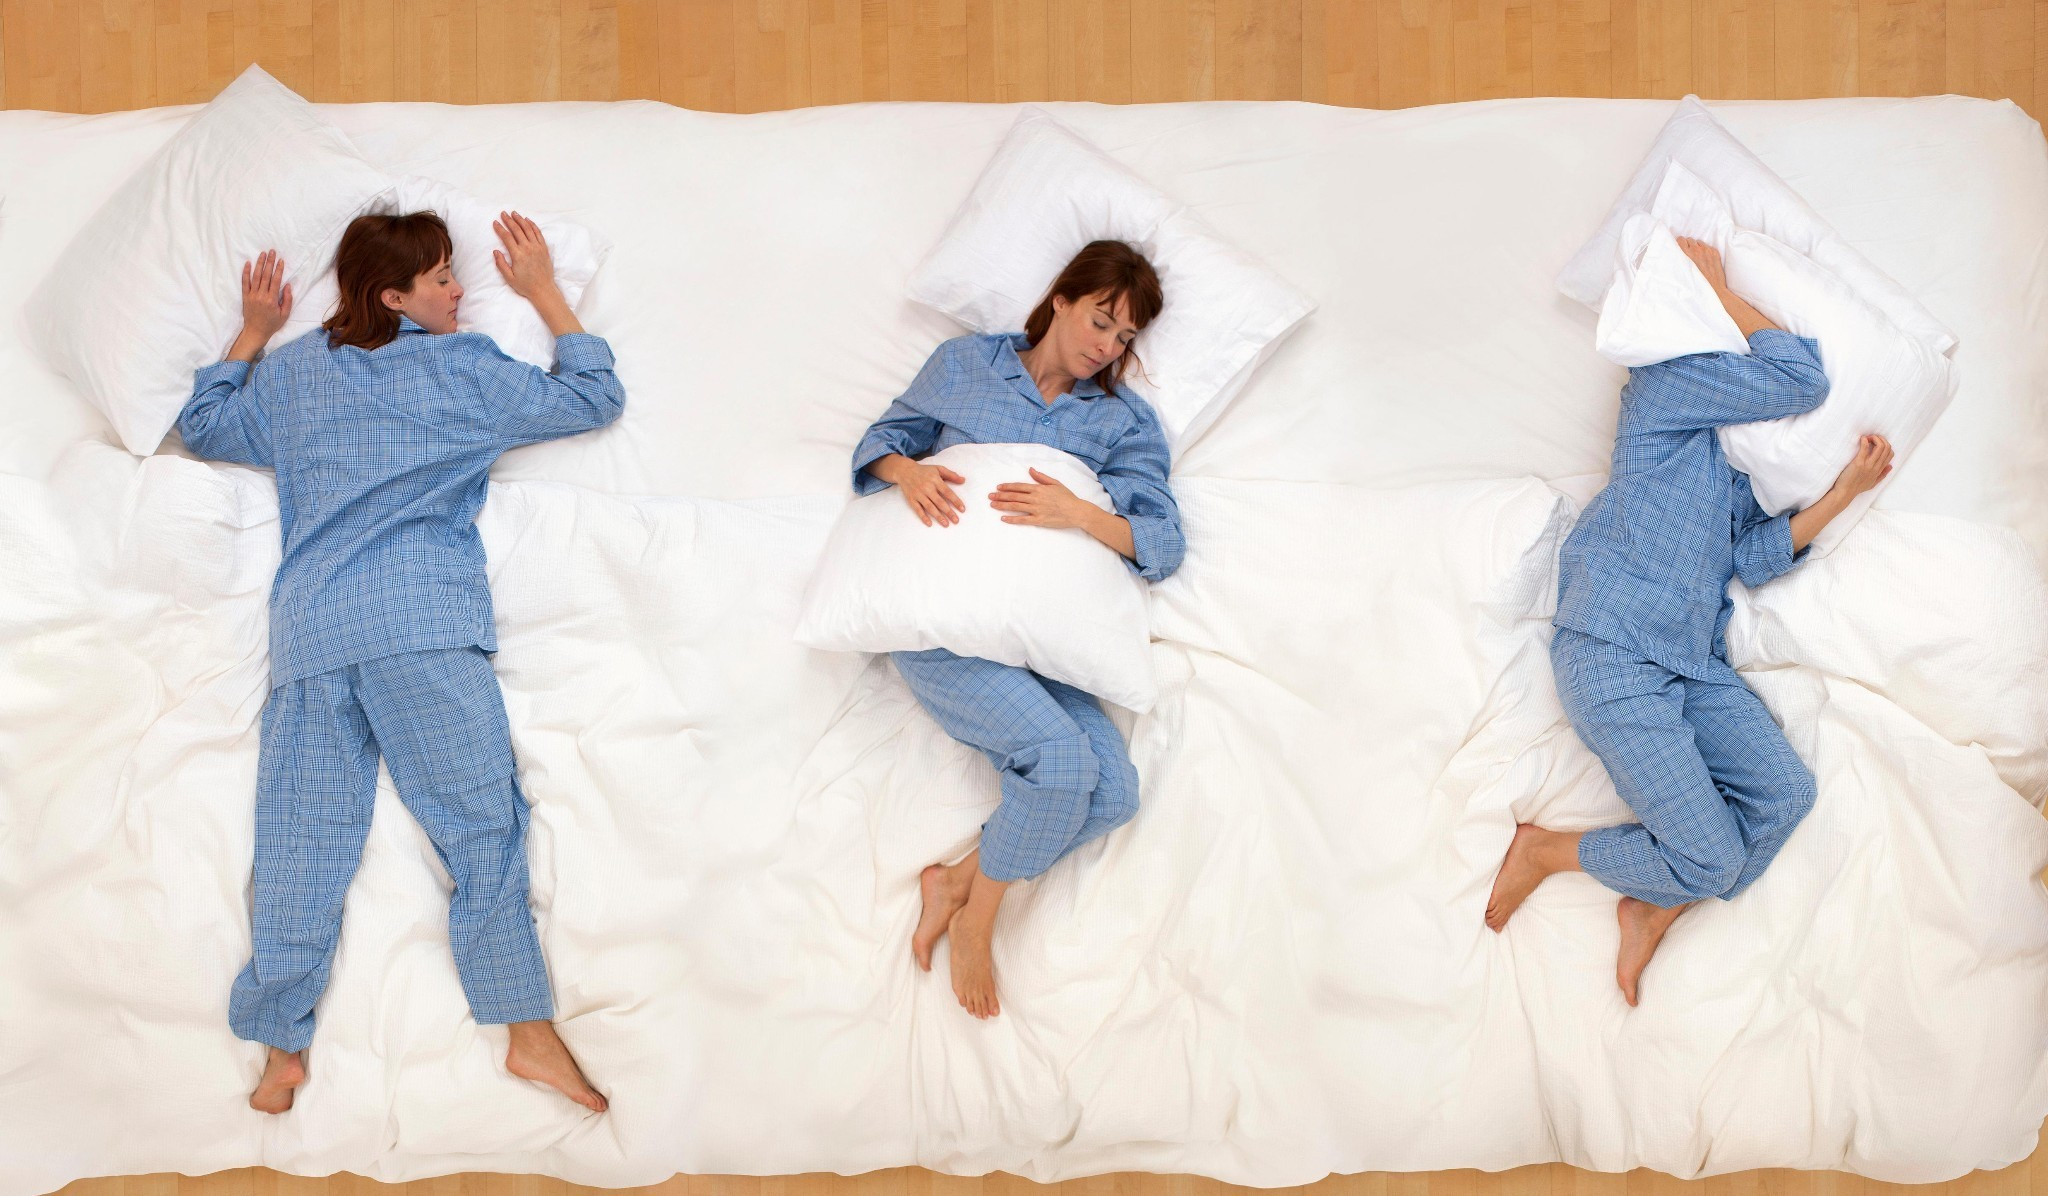 'Sleep should be prescribed': what those late nights out could be costing you